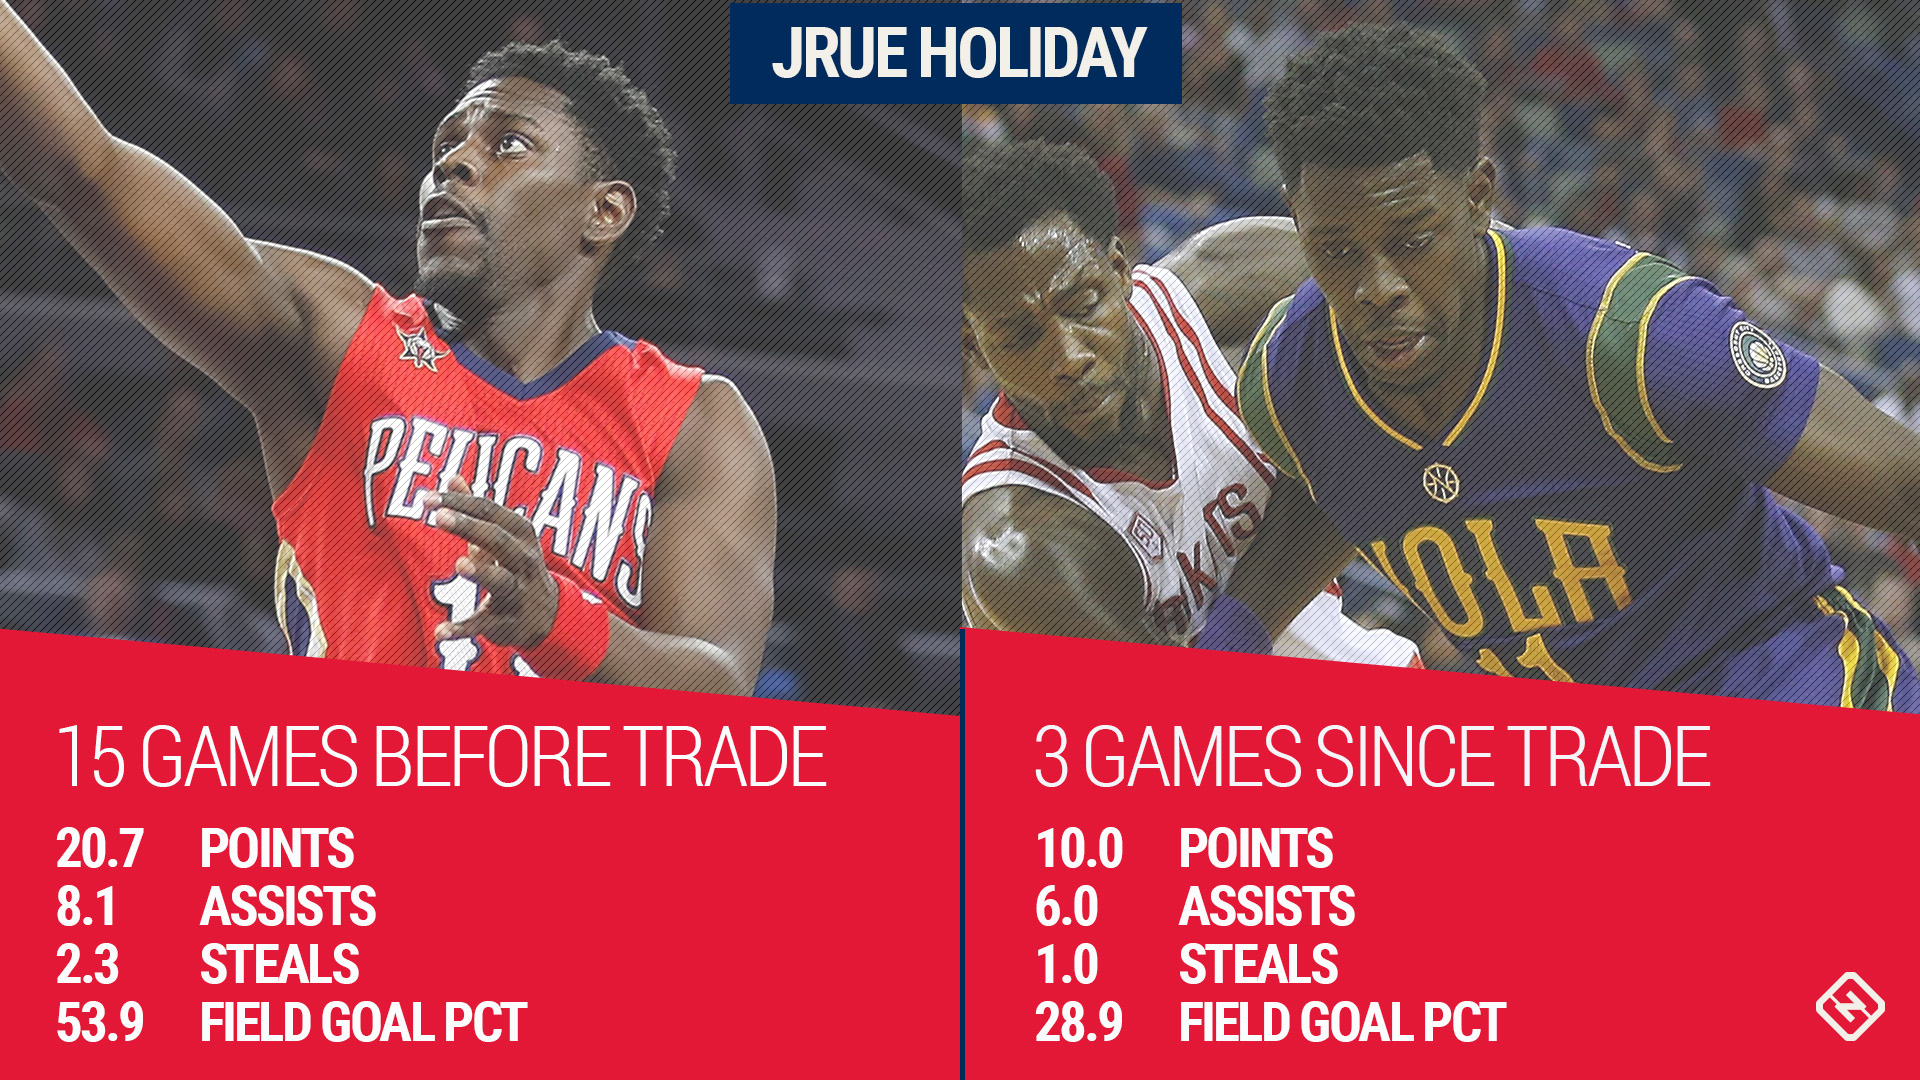 JRUE HOLIDAY BEFORE AFTER